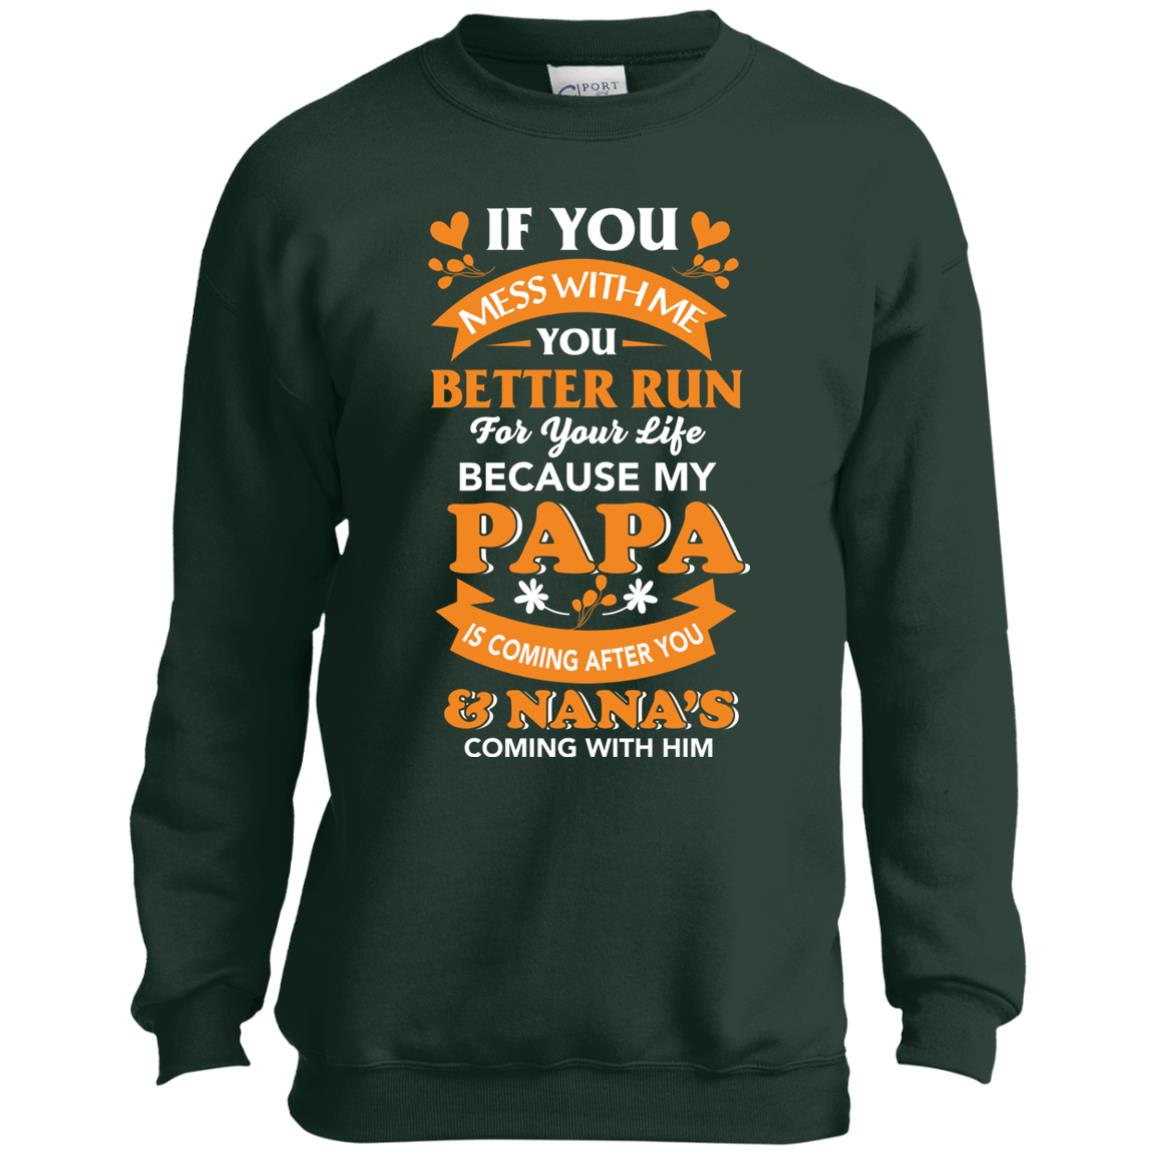 image 1246px Mess With Me? My Papa Is Coming After You & Nana Coming With Him Youth Size Shirt